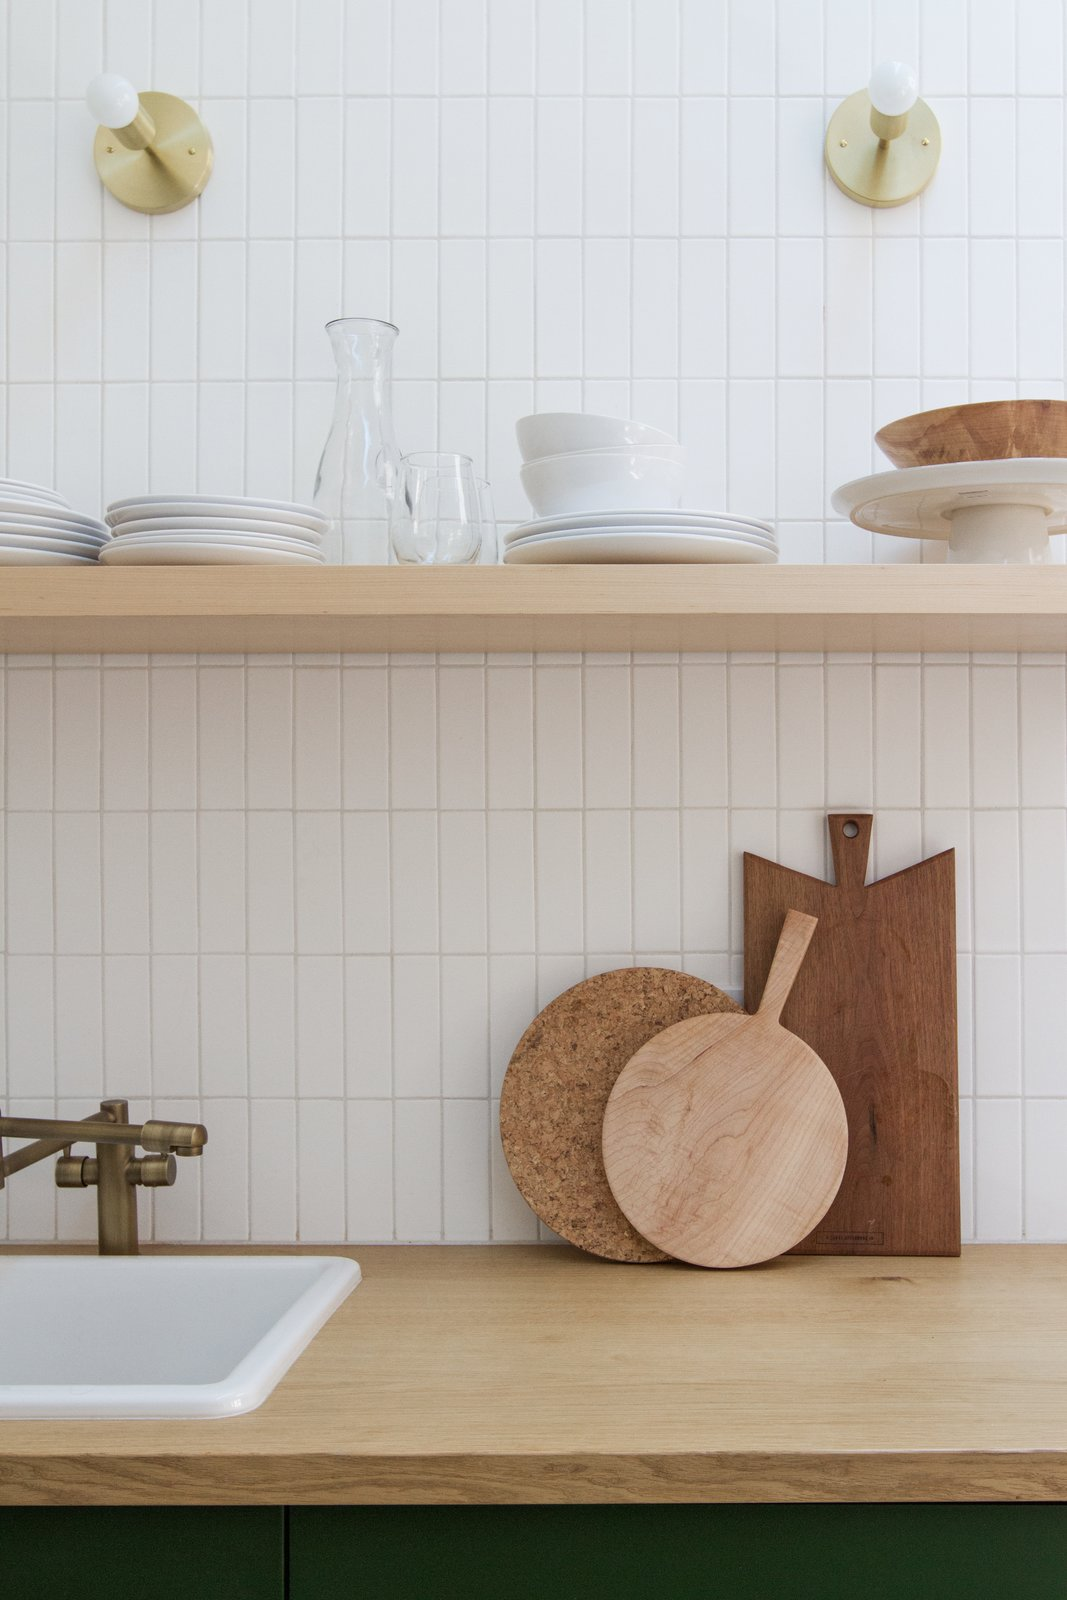 Kitchen, Wood, Drop In, Ceramic Tile, Colorful, Open, and Wall The floating shelf is from Semihandmade, faucet from Homary, and sconces from Cedar & Moss.  Best Kitchen Ceramic Tile Wall Photos from A Chic, Renovated A-Frame in Palm Springs Asks $535K